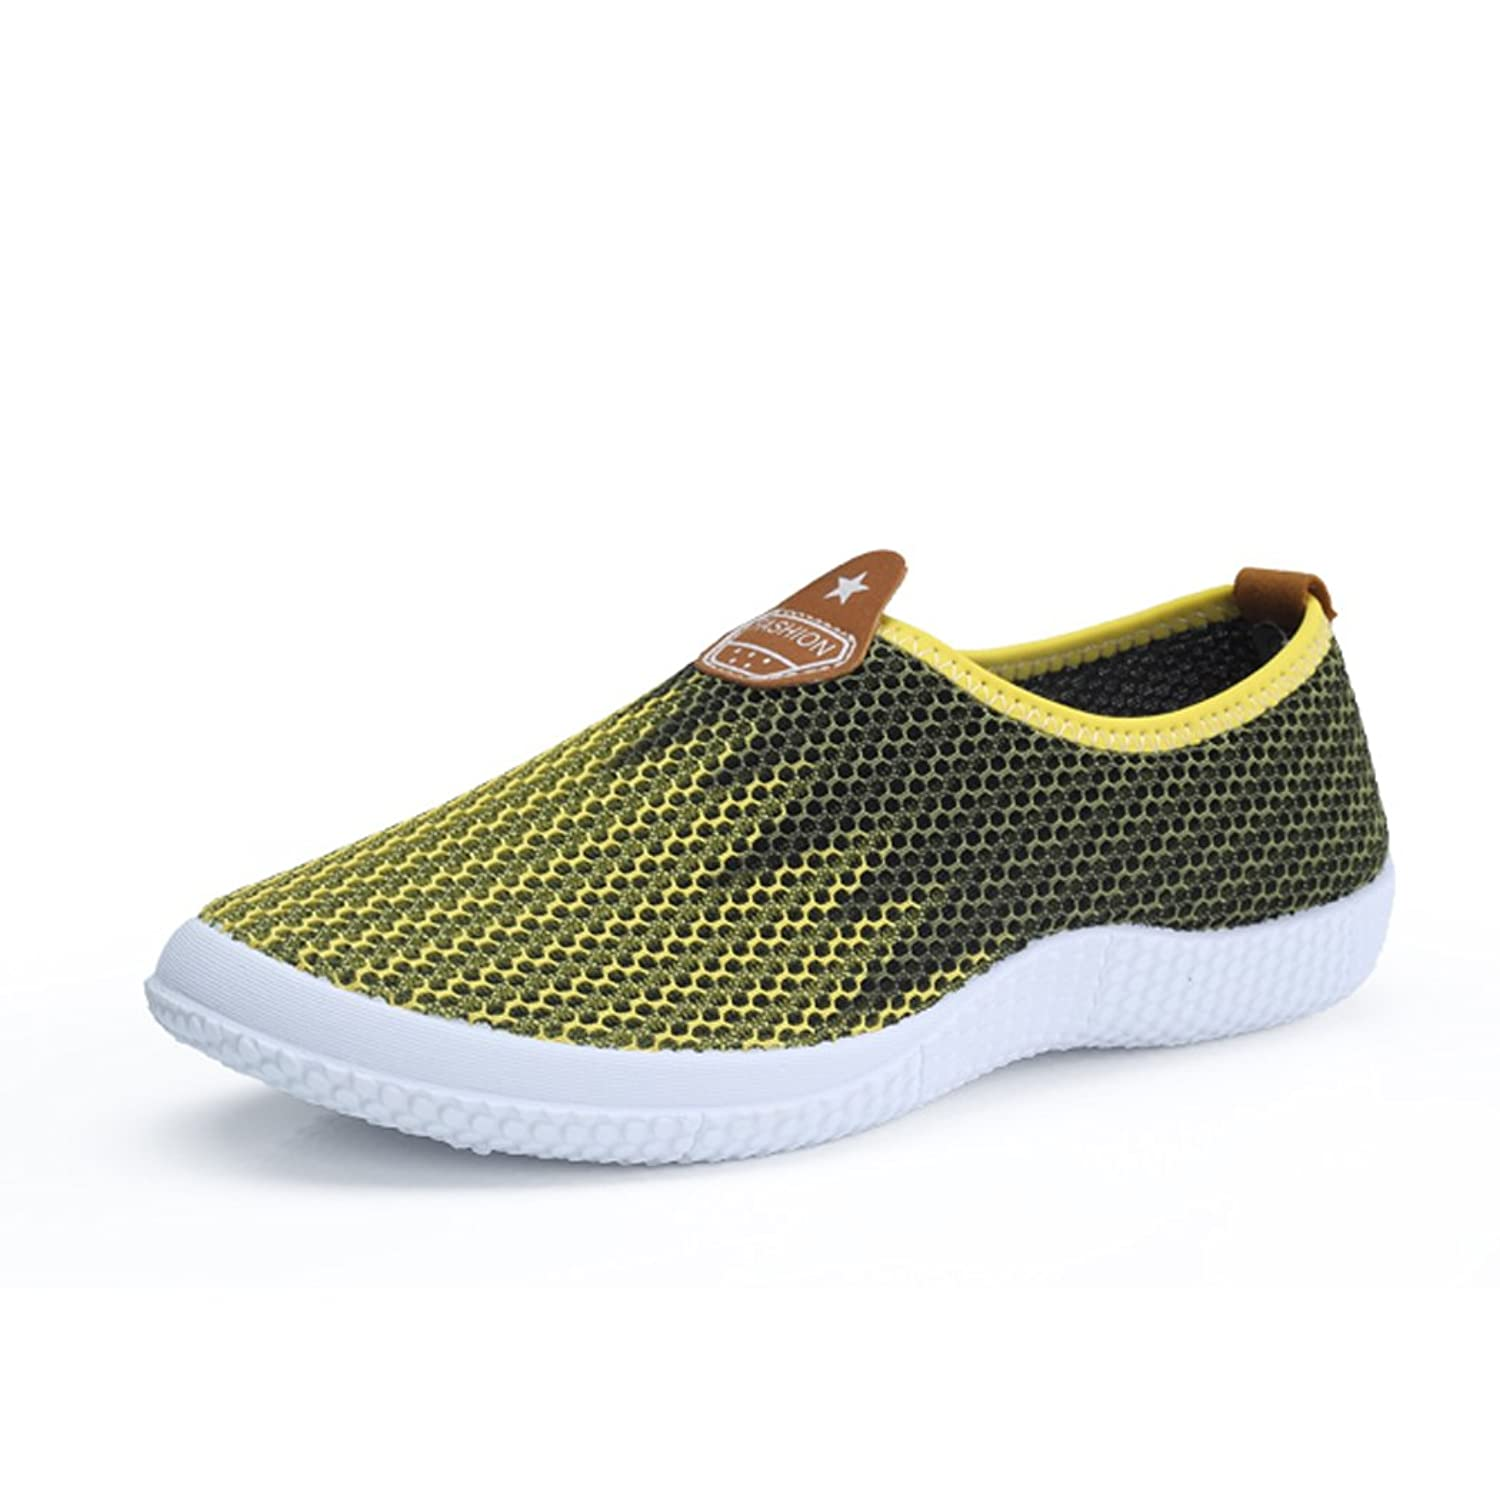 ASlibay Men's Breathable Mesh Slip-on Summer Loafers Fashion Color Matching Outdoor Sports Running Shoes